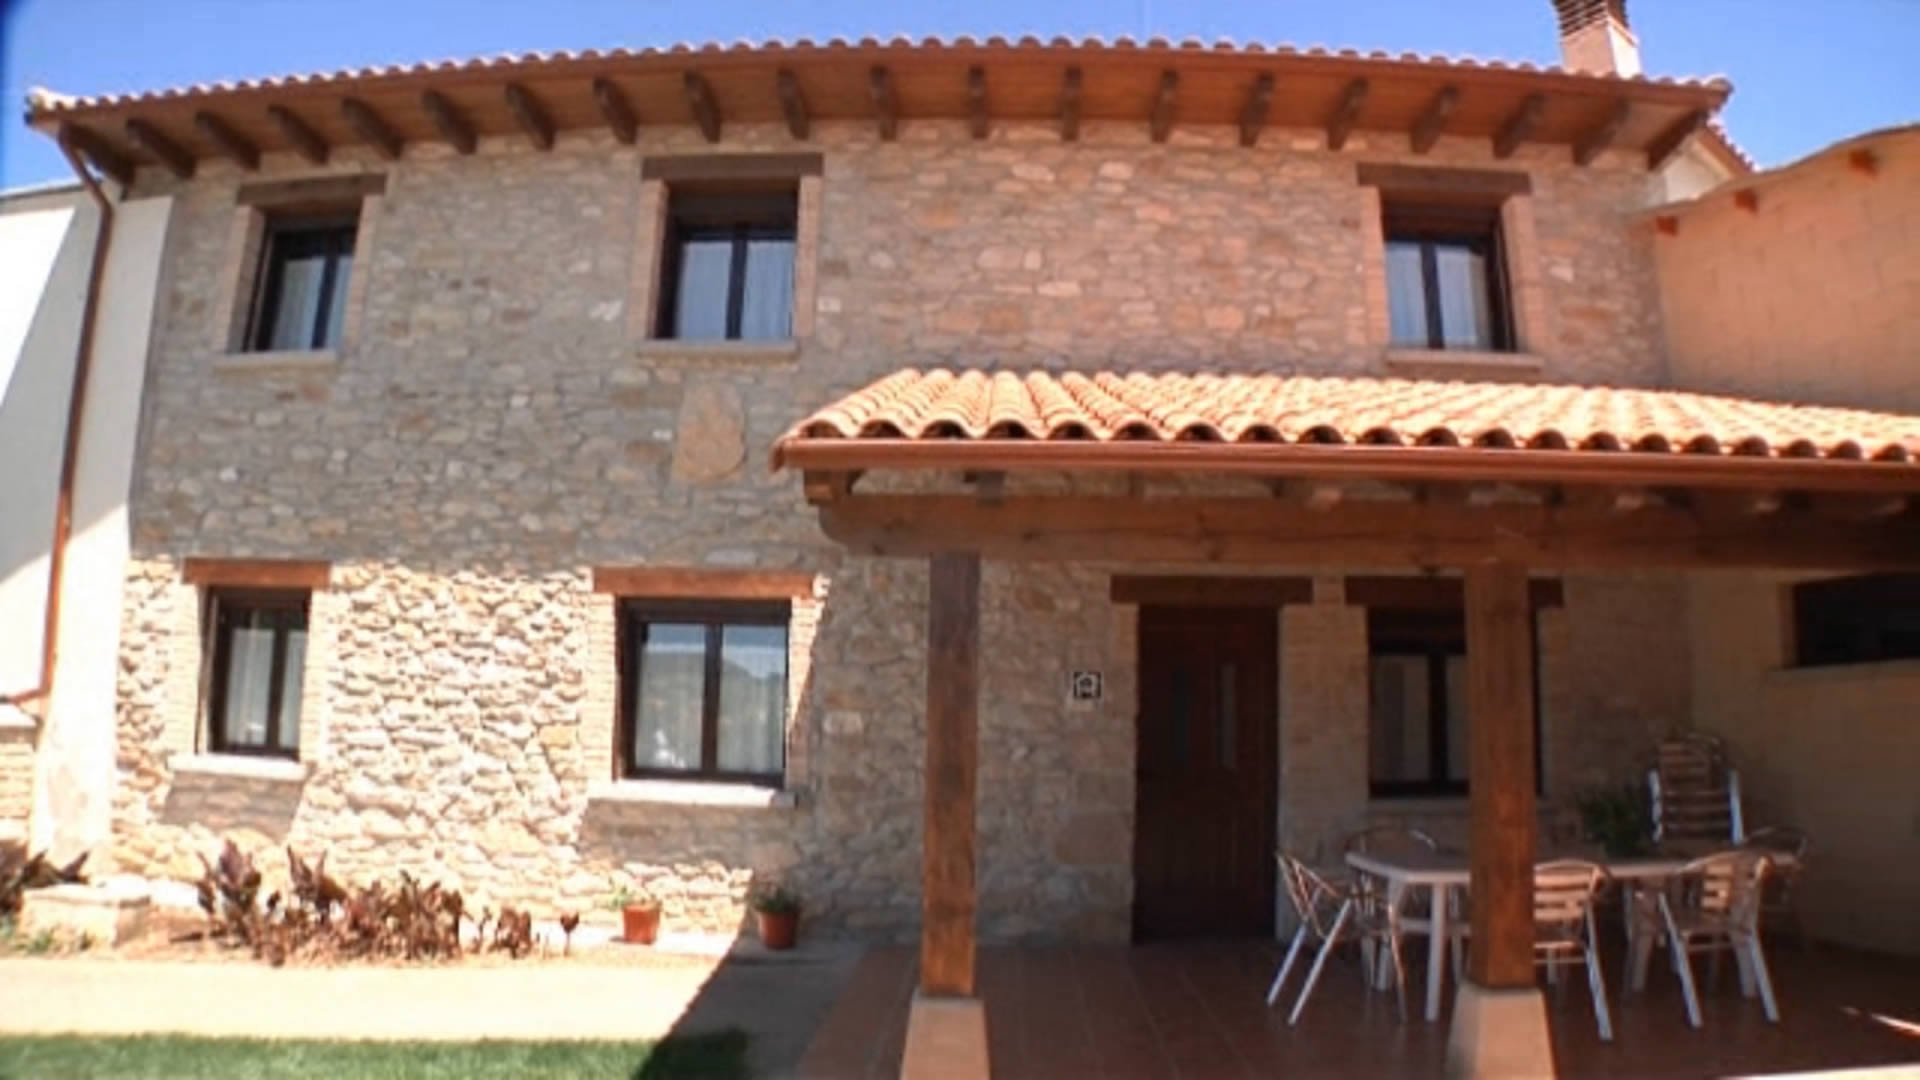 casa-rural-don-roque-dos-turismo-rural-navarra-tierrasdeiranzu.mp4